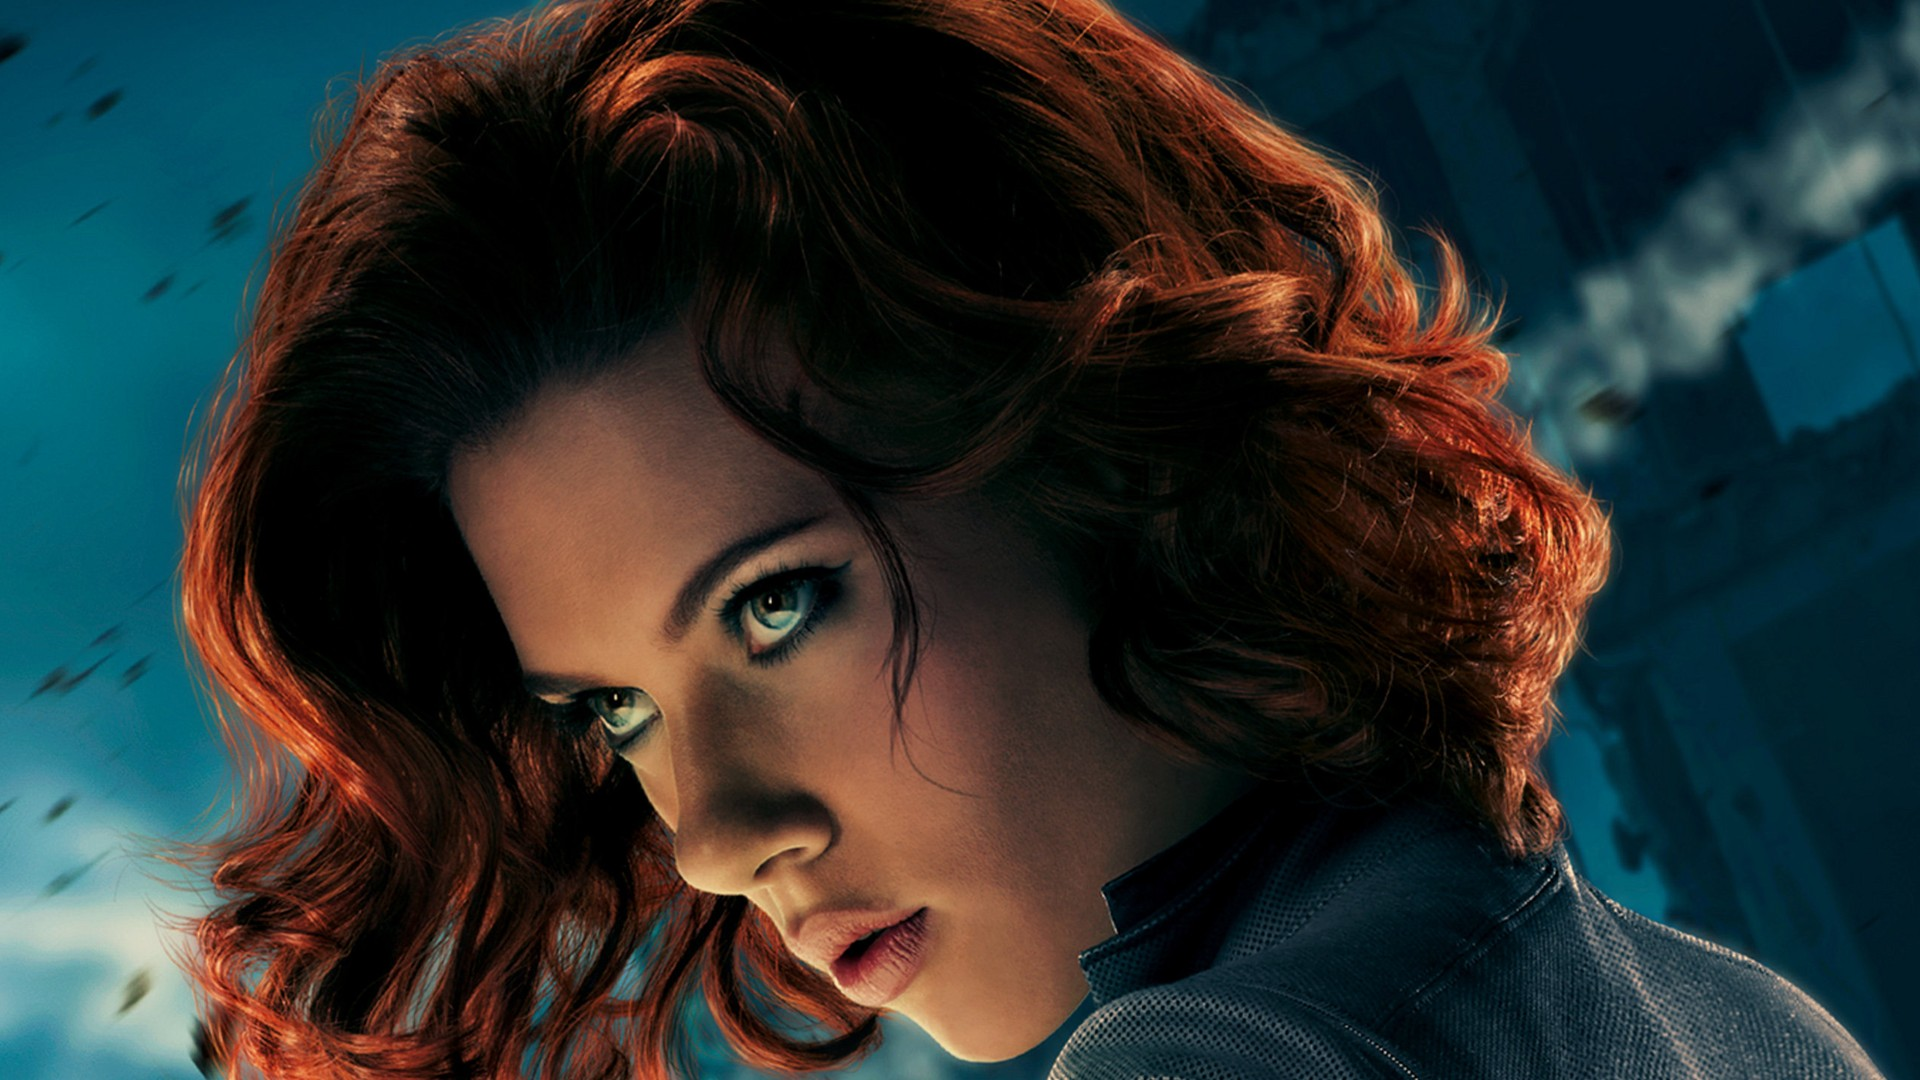 Black widow marvel comics the avengers movie wallpaper 1920x1080